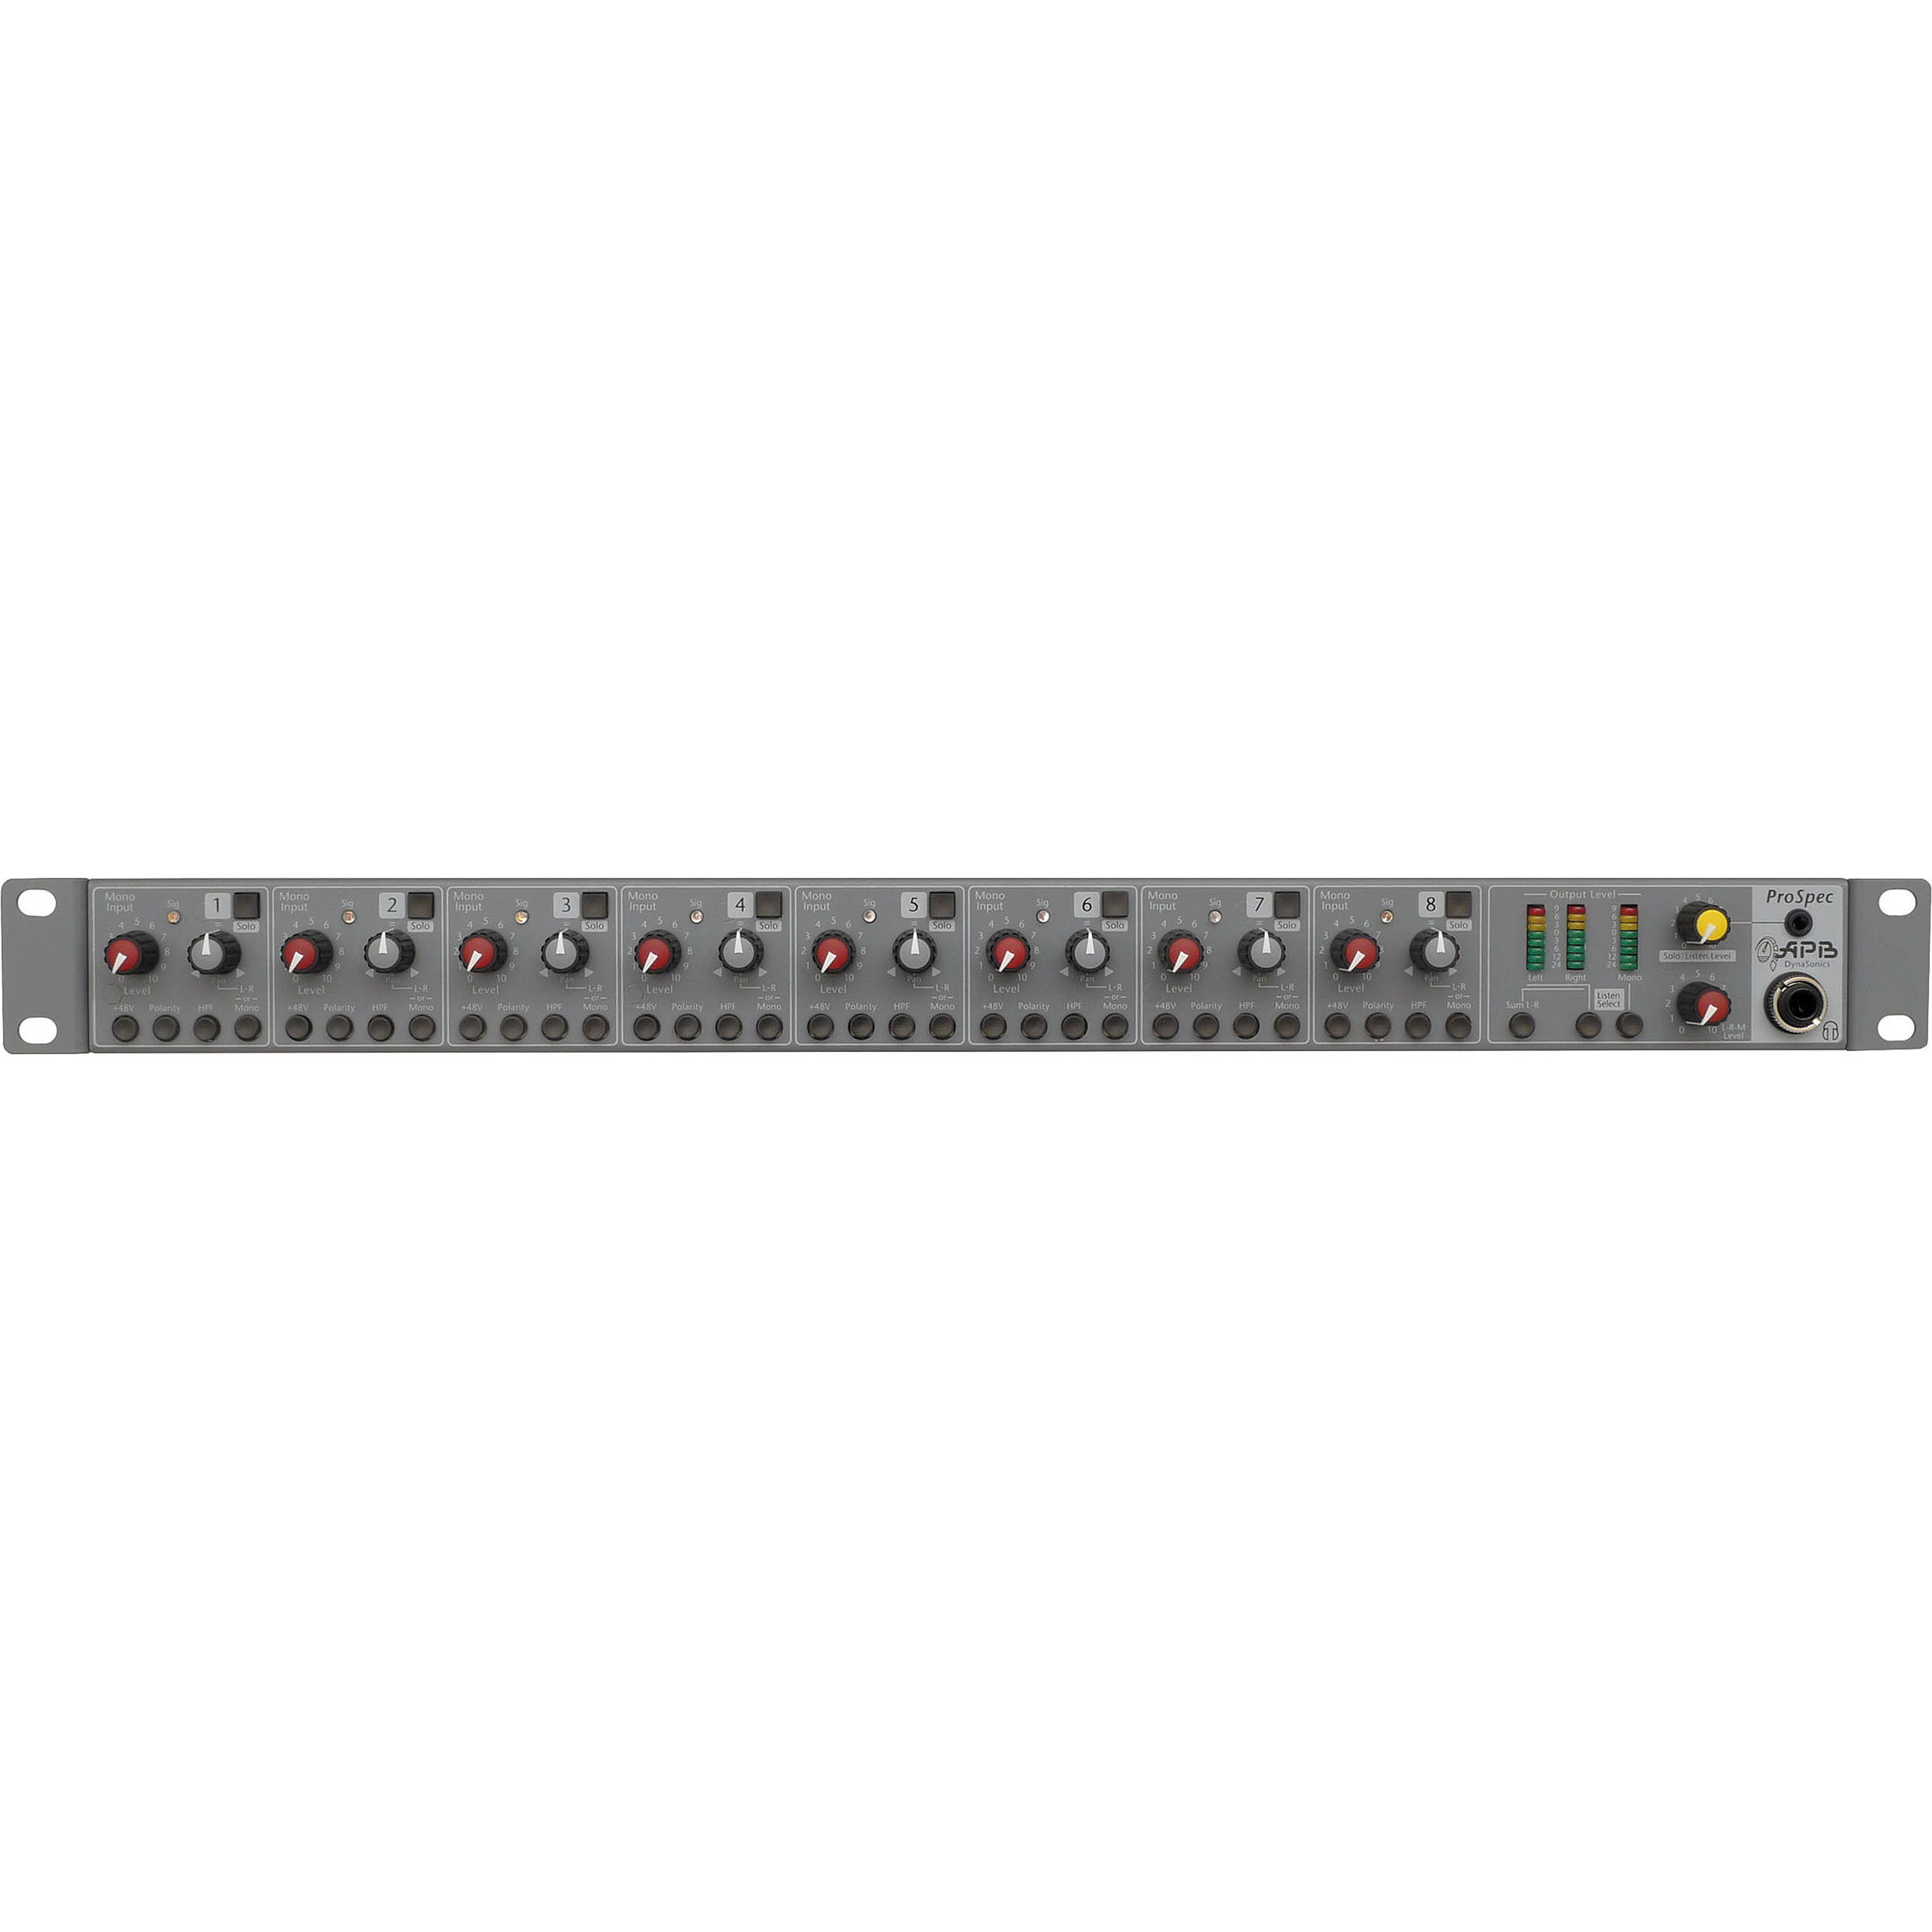 presonus channel active mixer studiolive digital alternate audio integration mixers for ai mount image rack marching